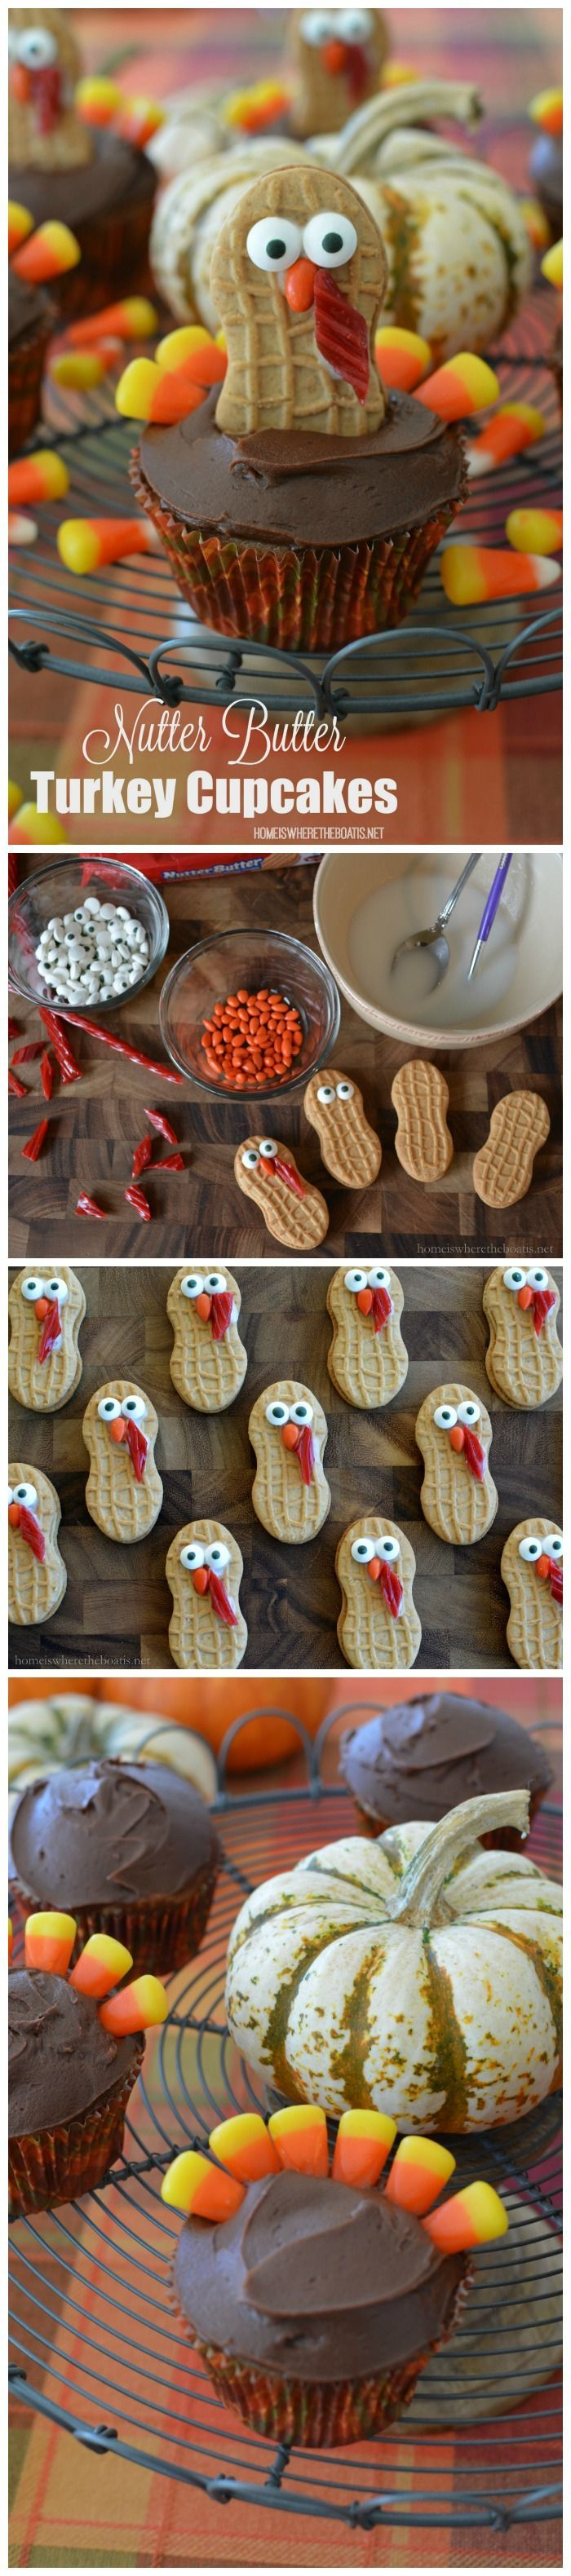 Won't these make adorable Thanksgiving desserts! Nutter Butter Turkey Cupcakes, as fun to make as they are to eat. (Candy Cake Kids)